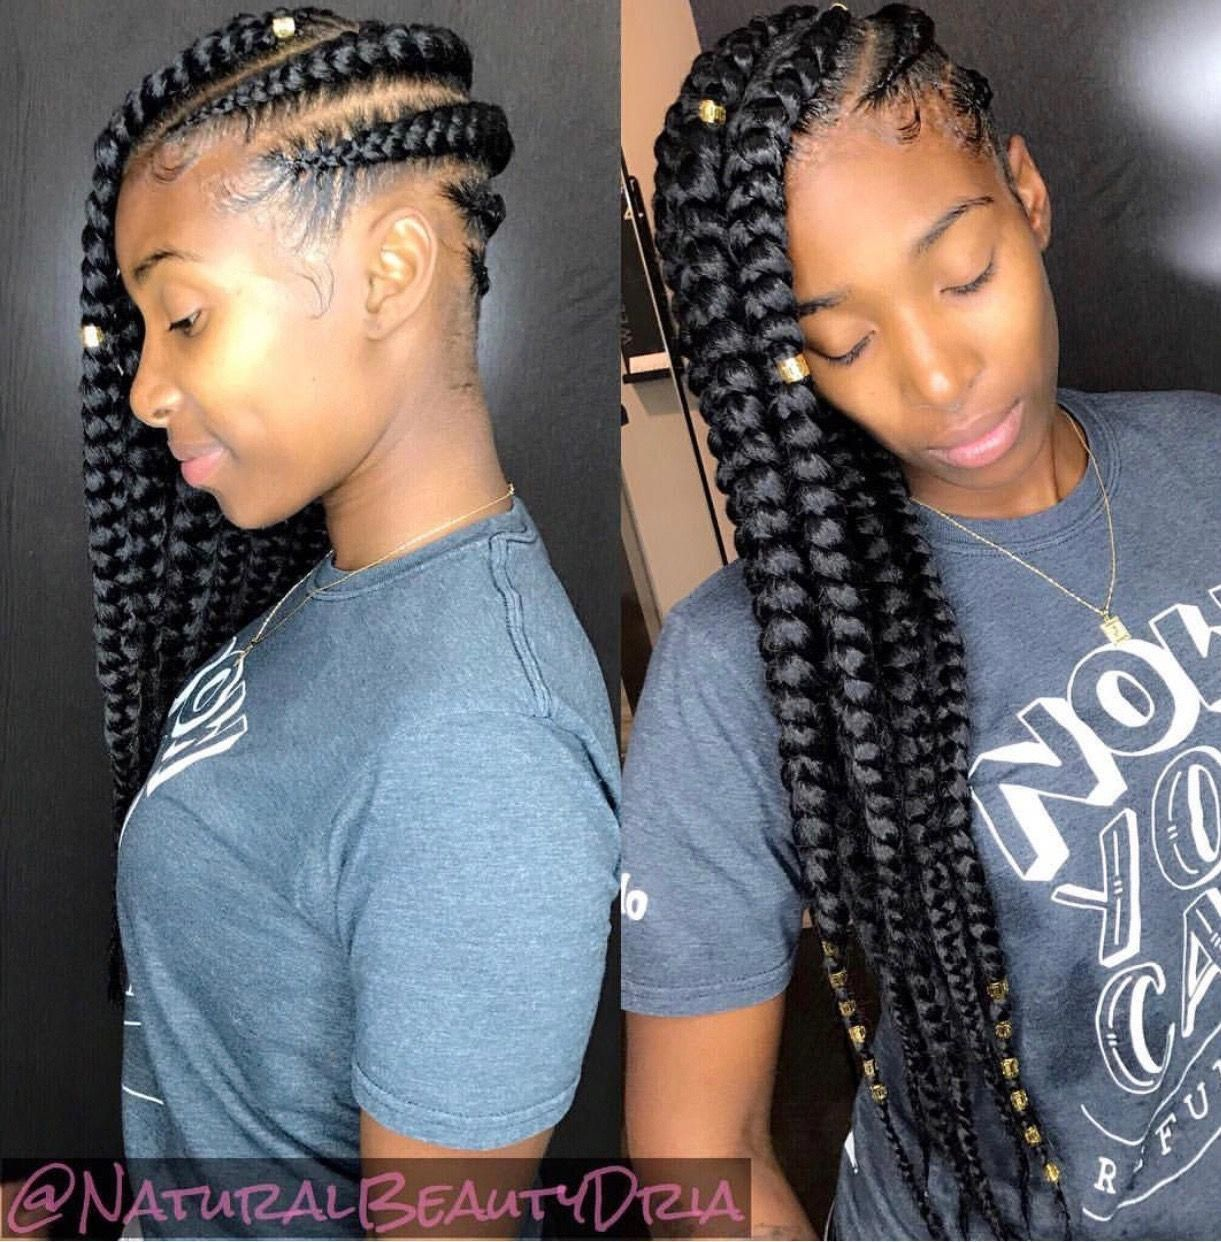 Pin By Jordan On Sister Hairstyle Ideas In 2020 Quick Braided Hairstyles Black Girl Braided Hairstyles Braided Hairstyles For Black Women